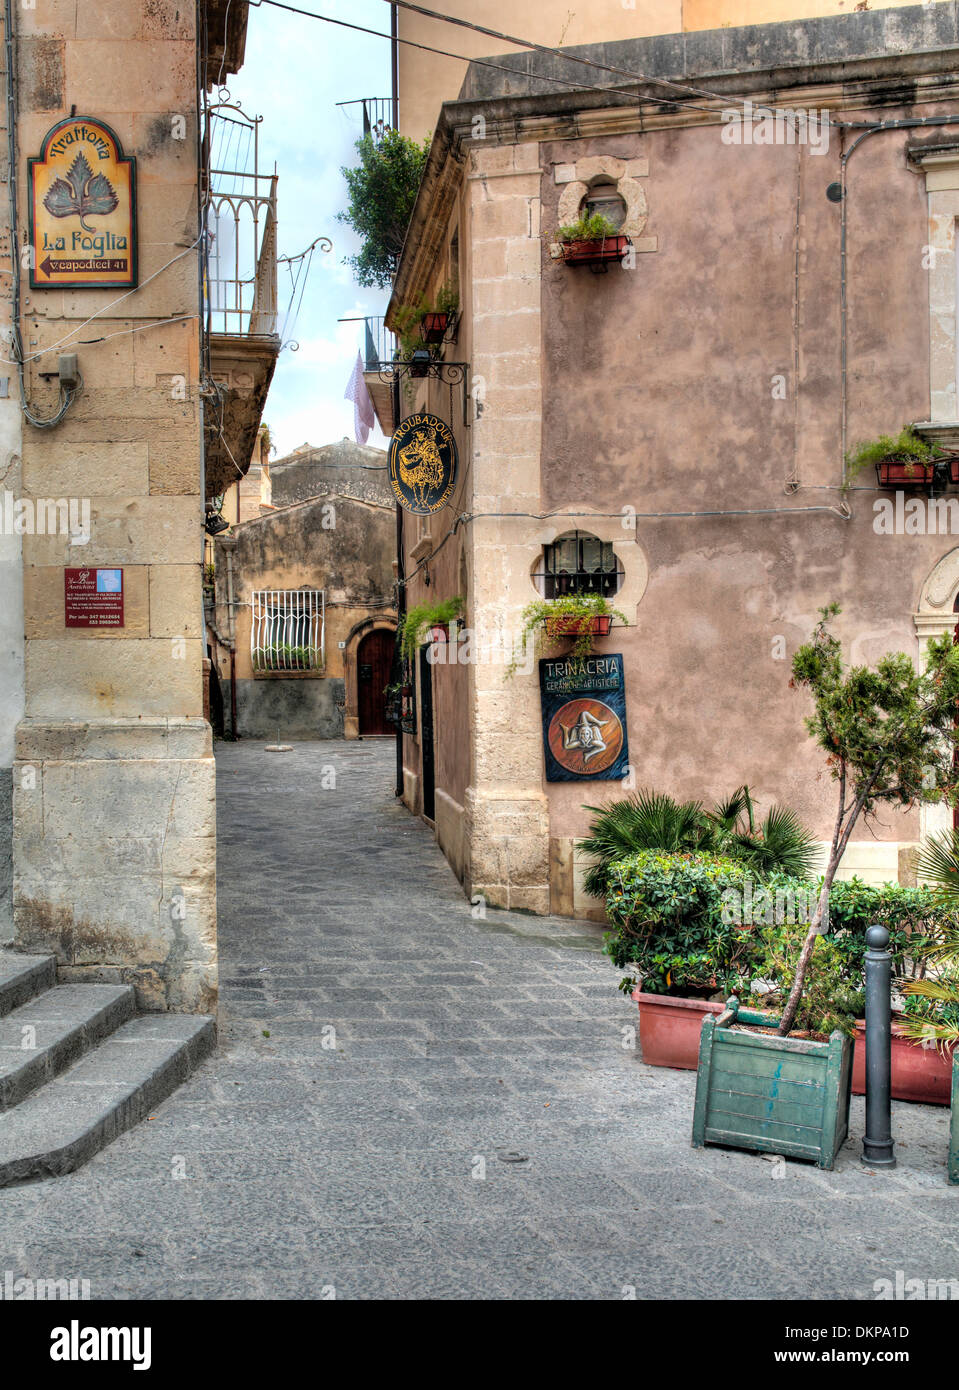 Street in old town, Ortygia, Syracuse, Sicily, Italy - Stock Image